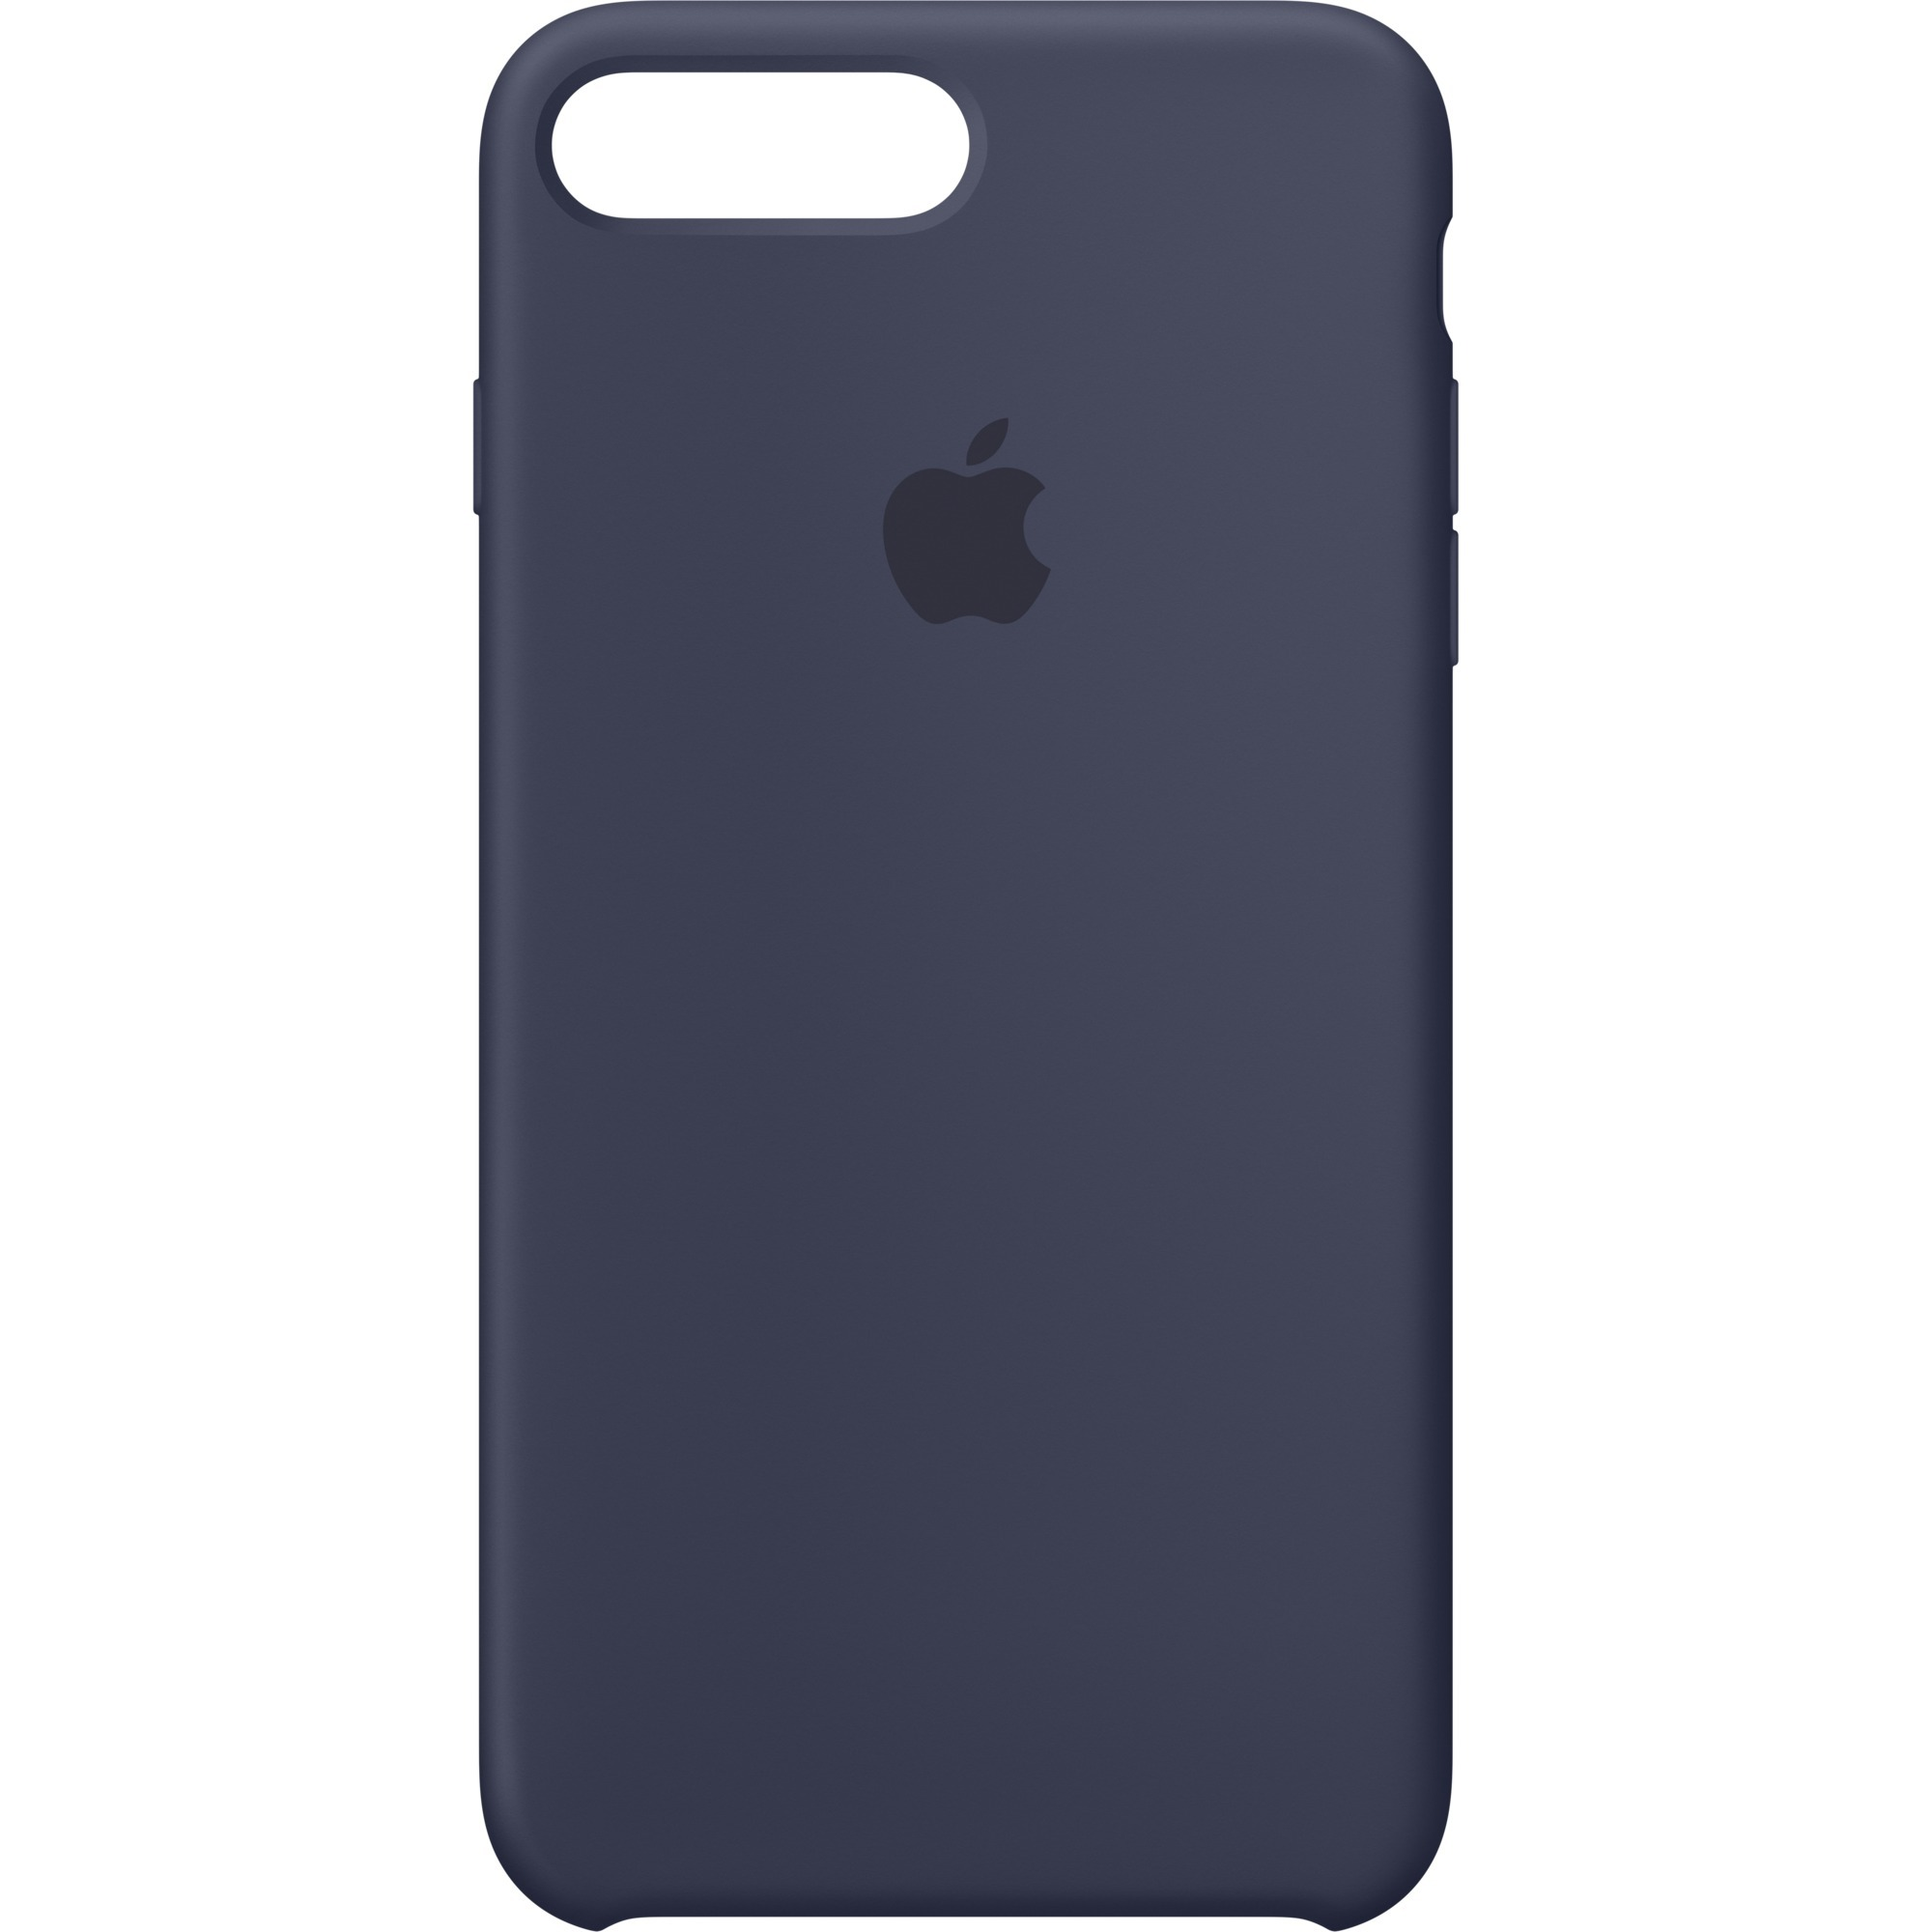 iPhone 7 Plus Leder Case, Custodia protettiva